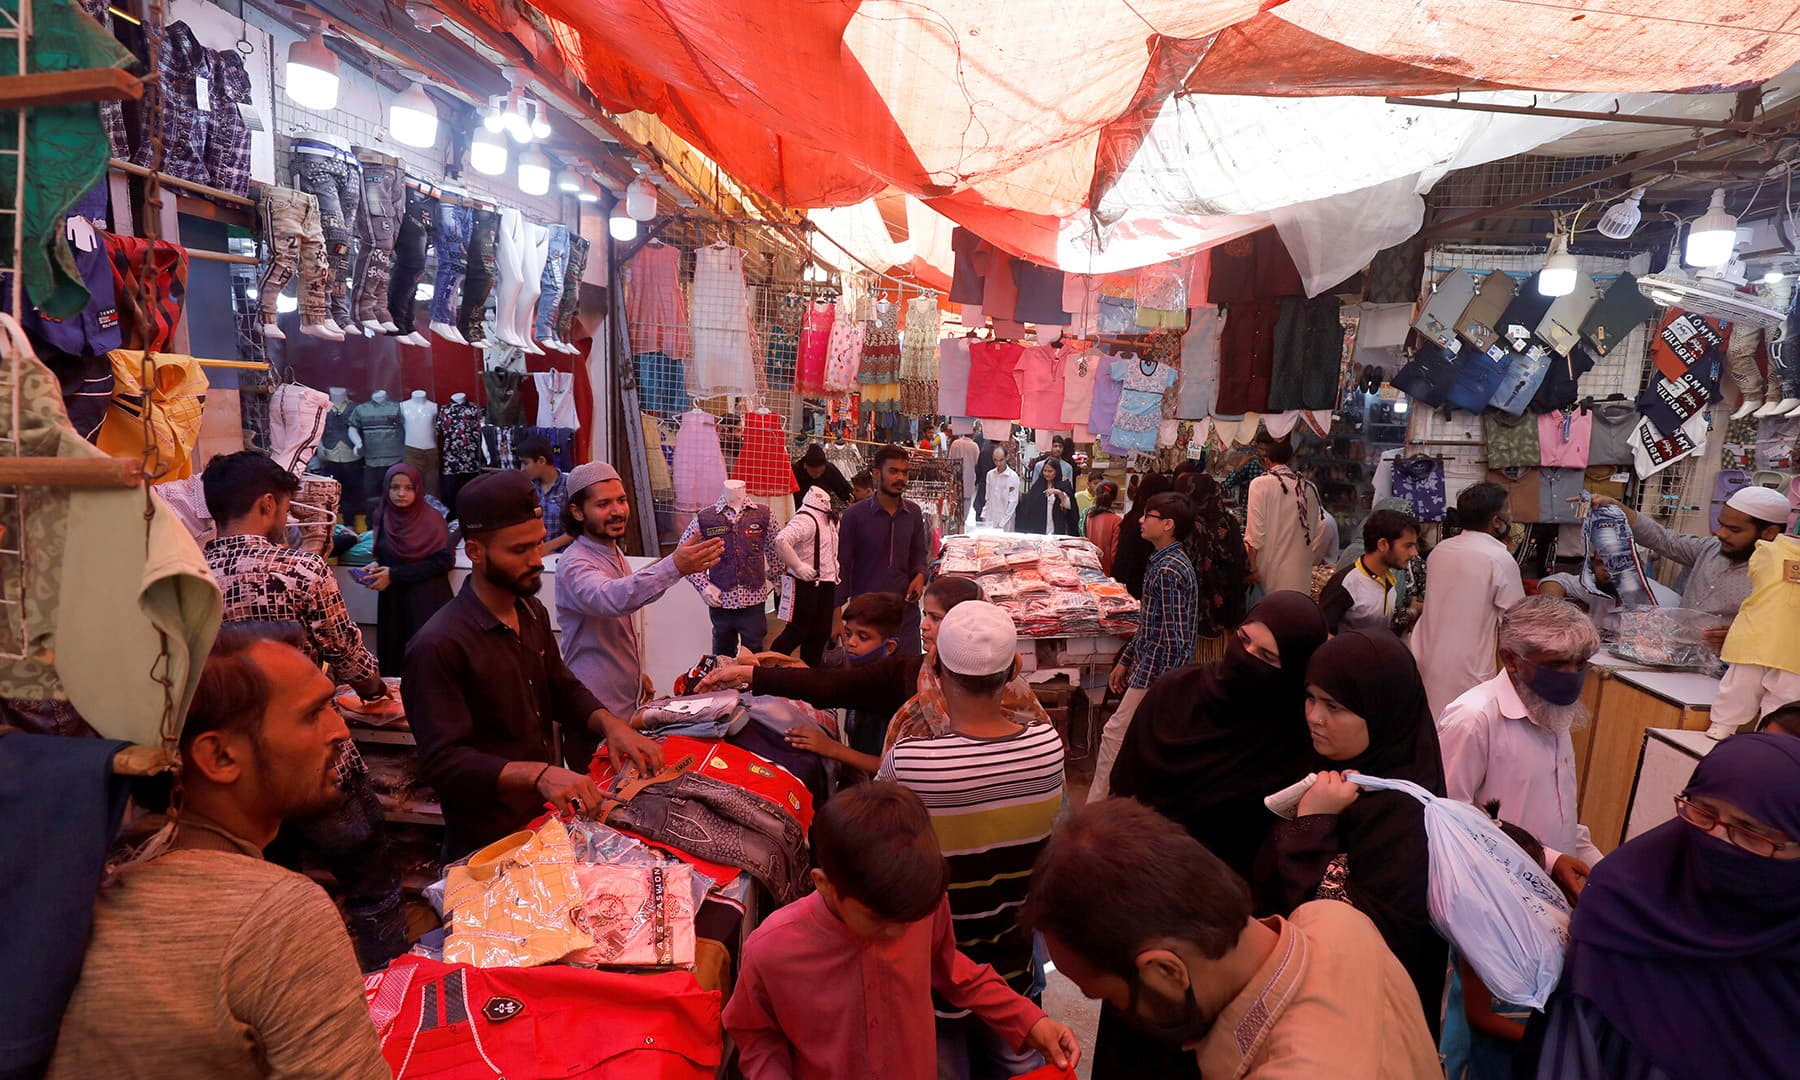 People shop from stalls in a market in Karachi. — Reuters